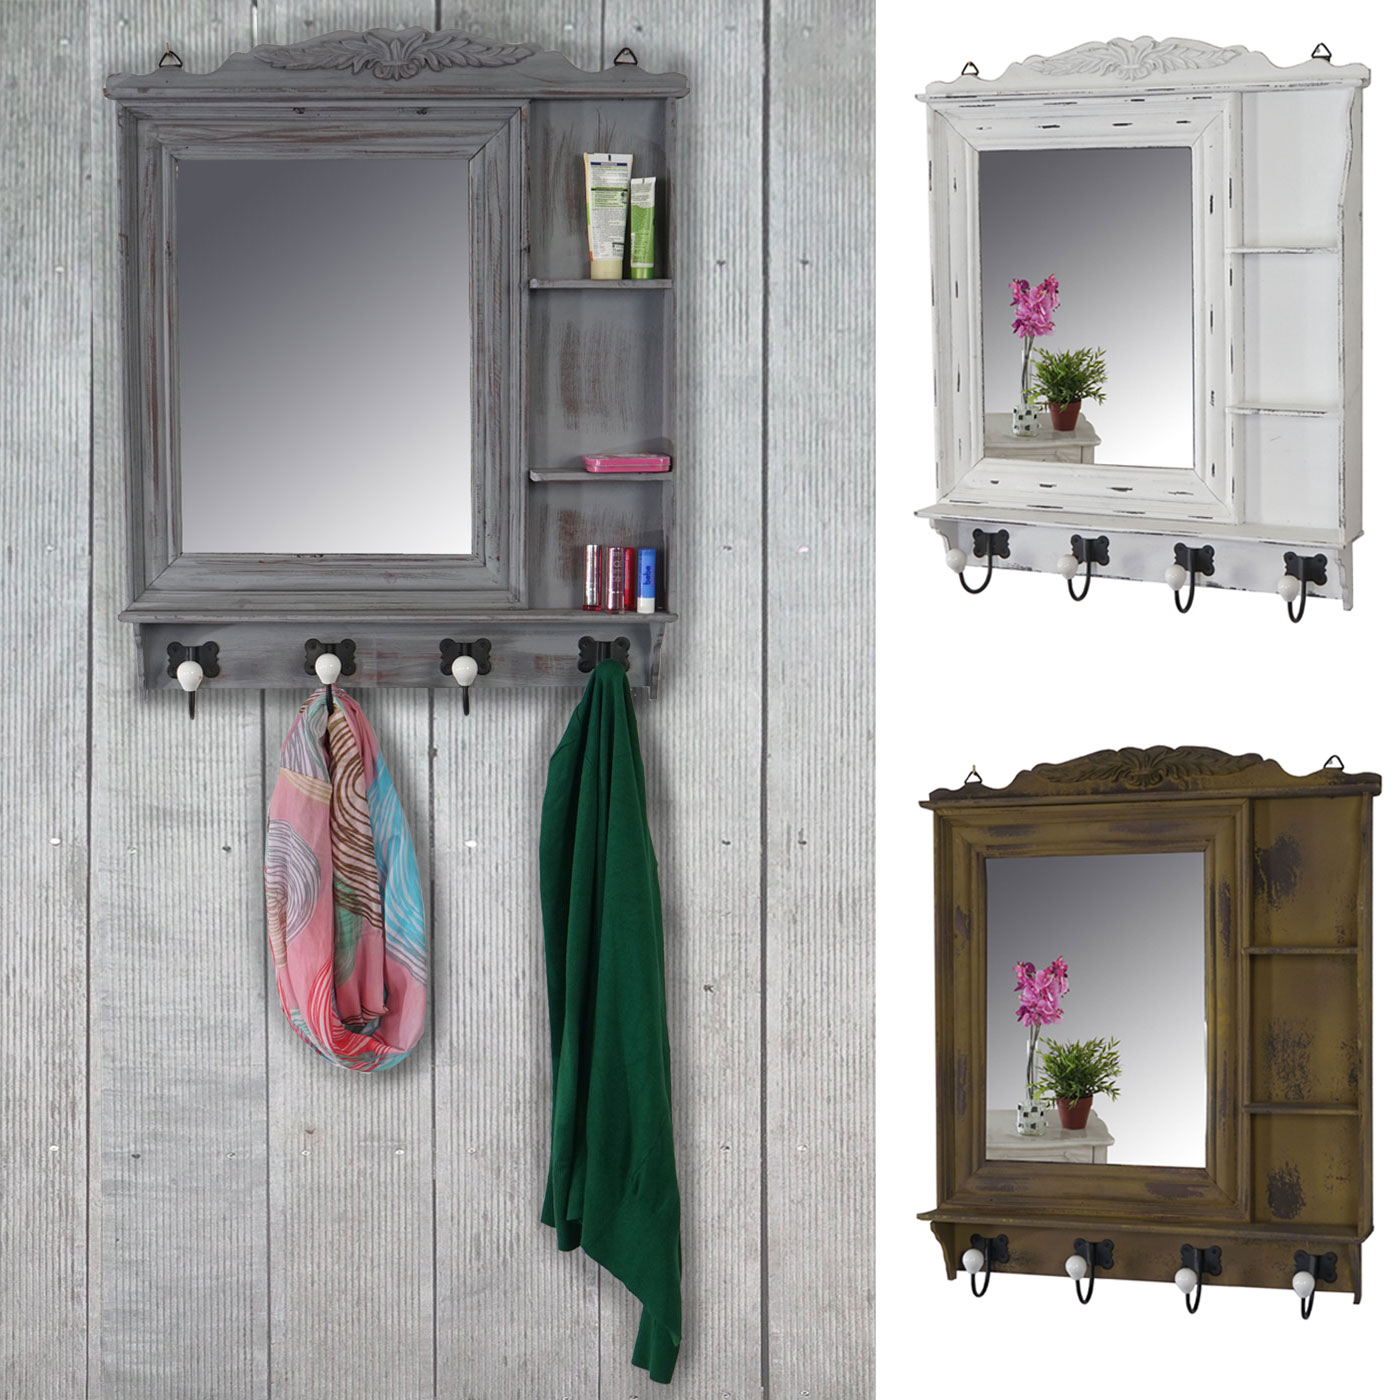 garderobe kanata wandgarderobe mit spiegel 75x63x9cm shabby look vintage ebay. Black Bedroom Furniture Sets. Home Design Ideas